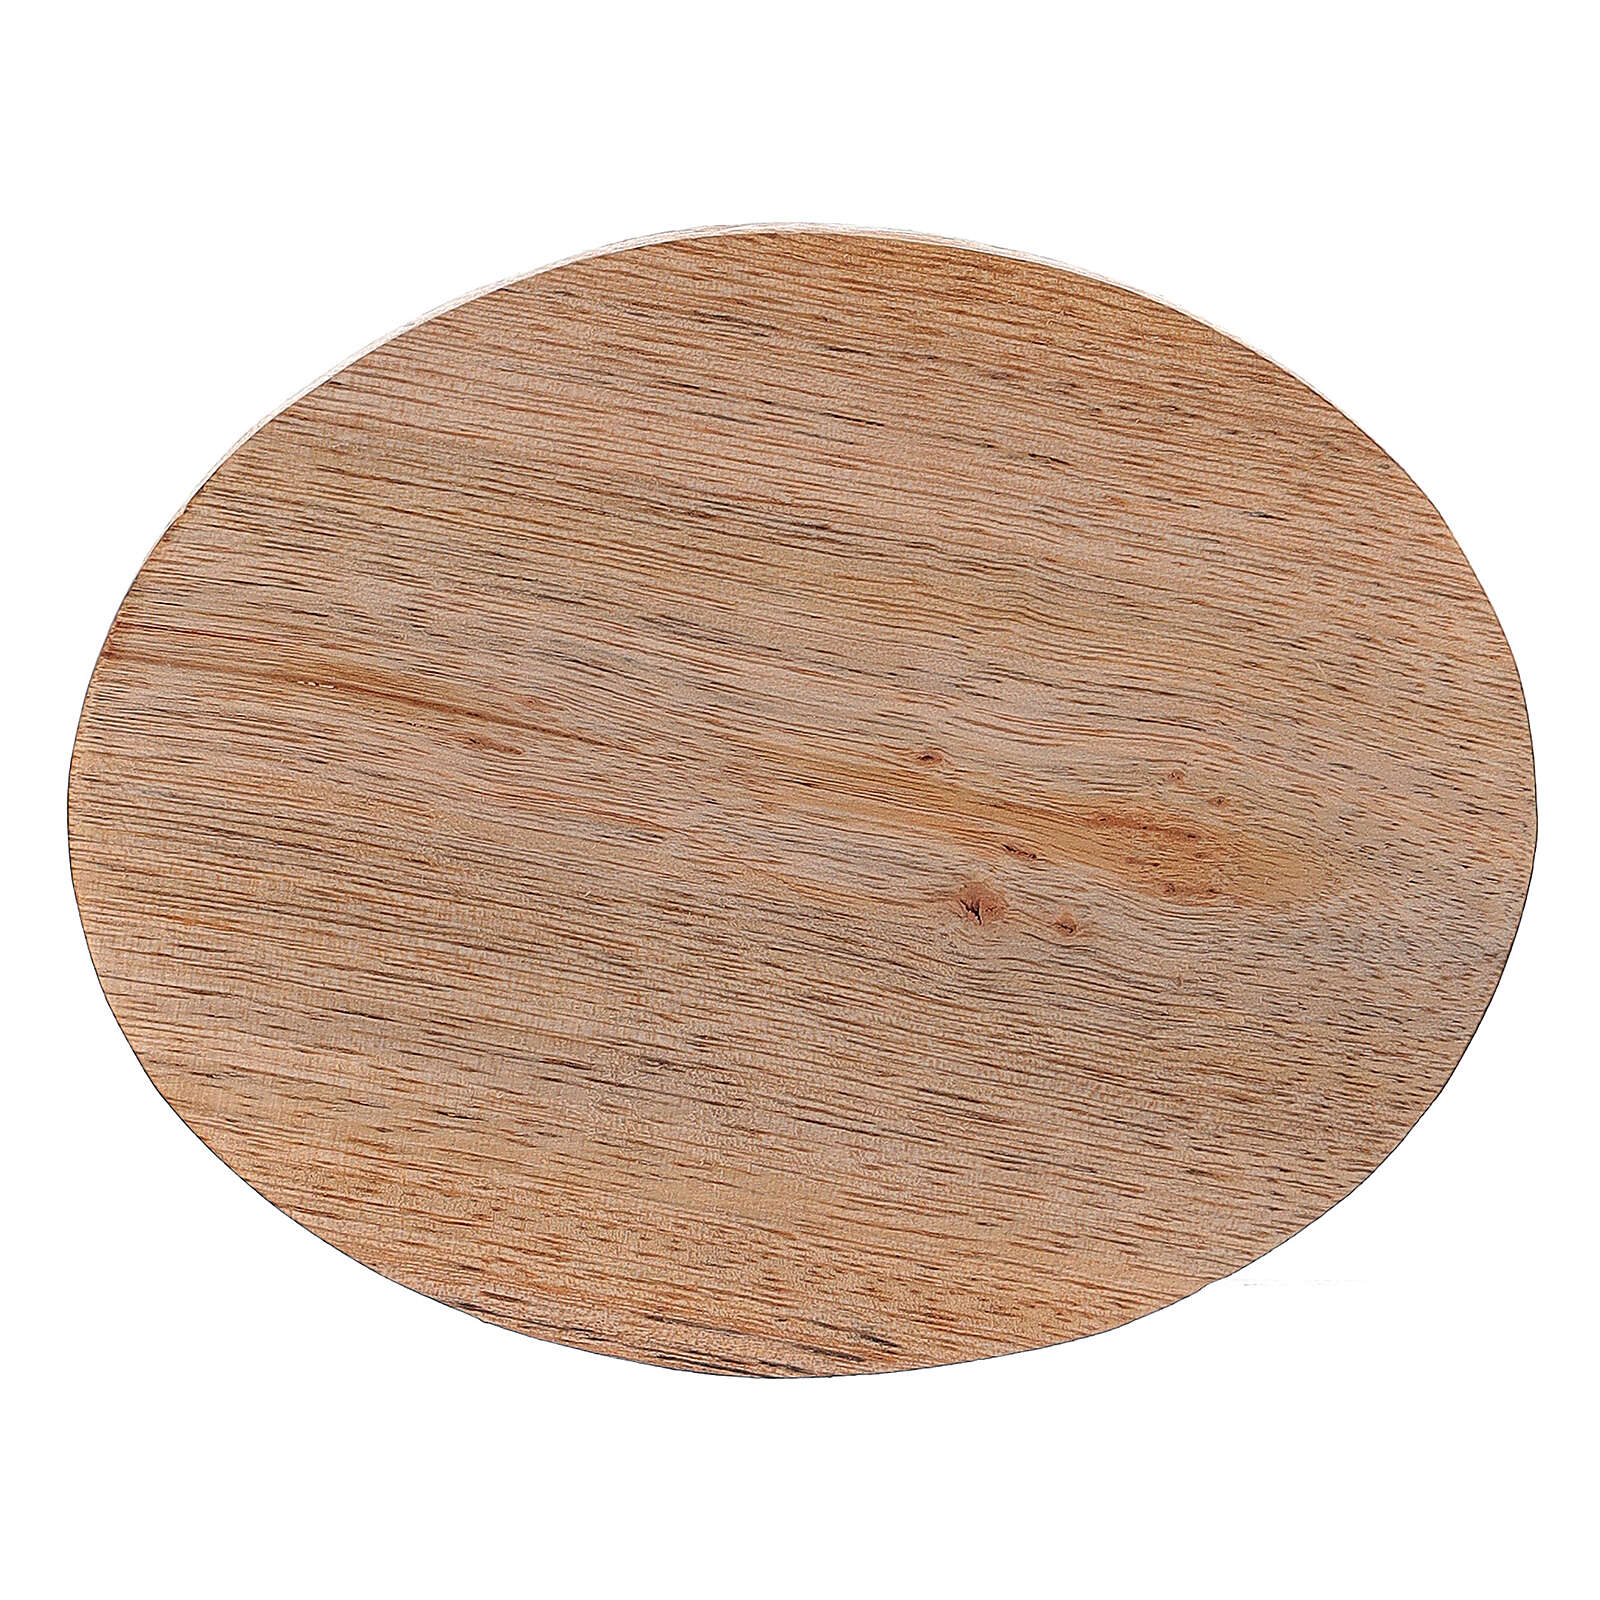 Oval natural mango wood candle holder plate 4x3 in 3